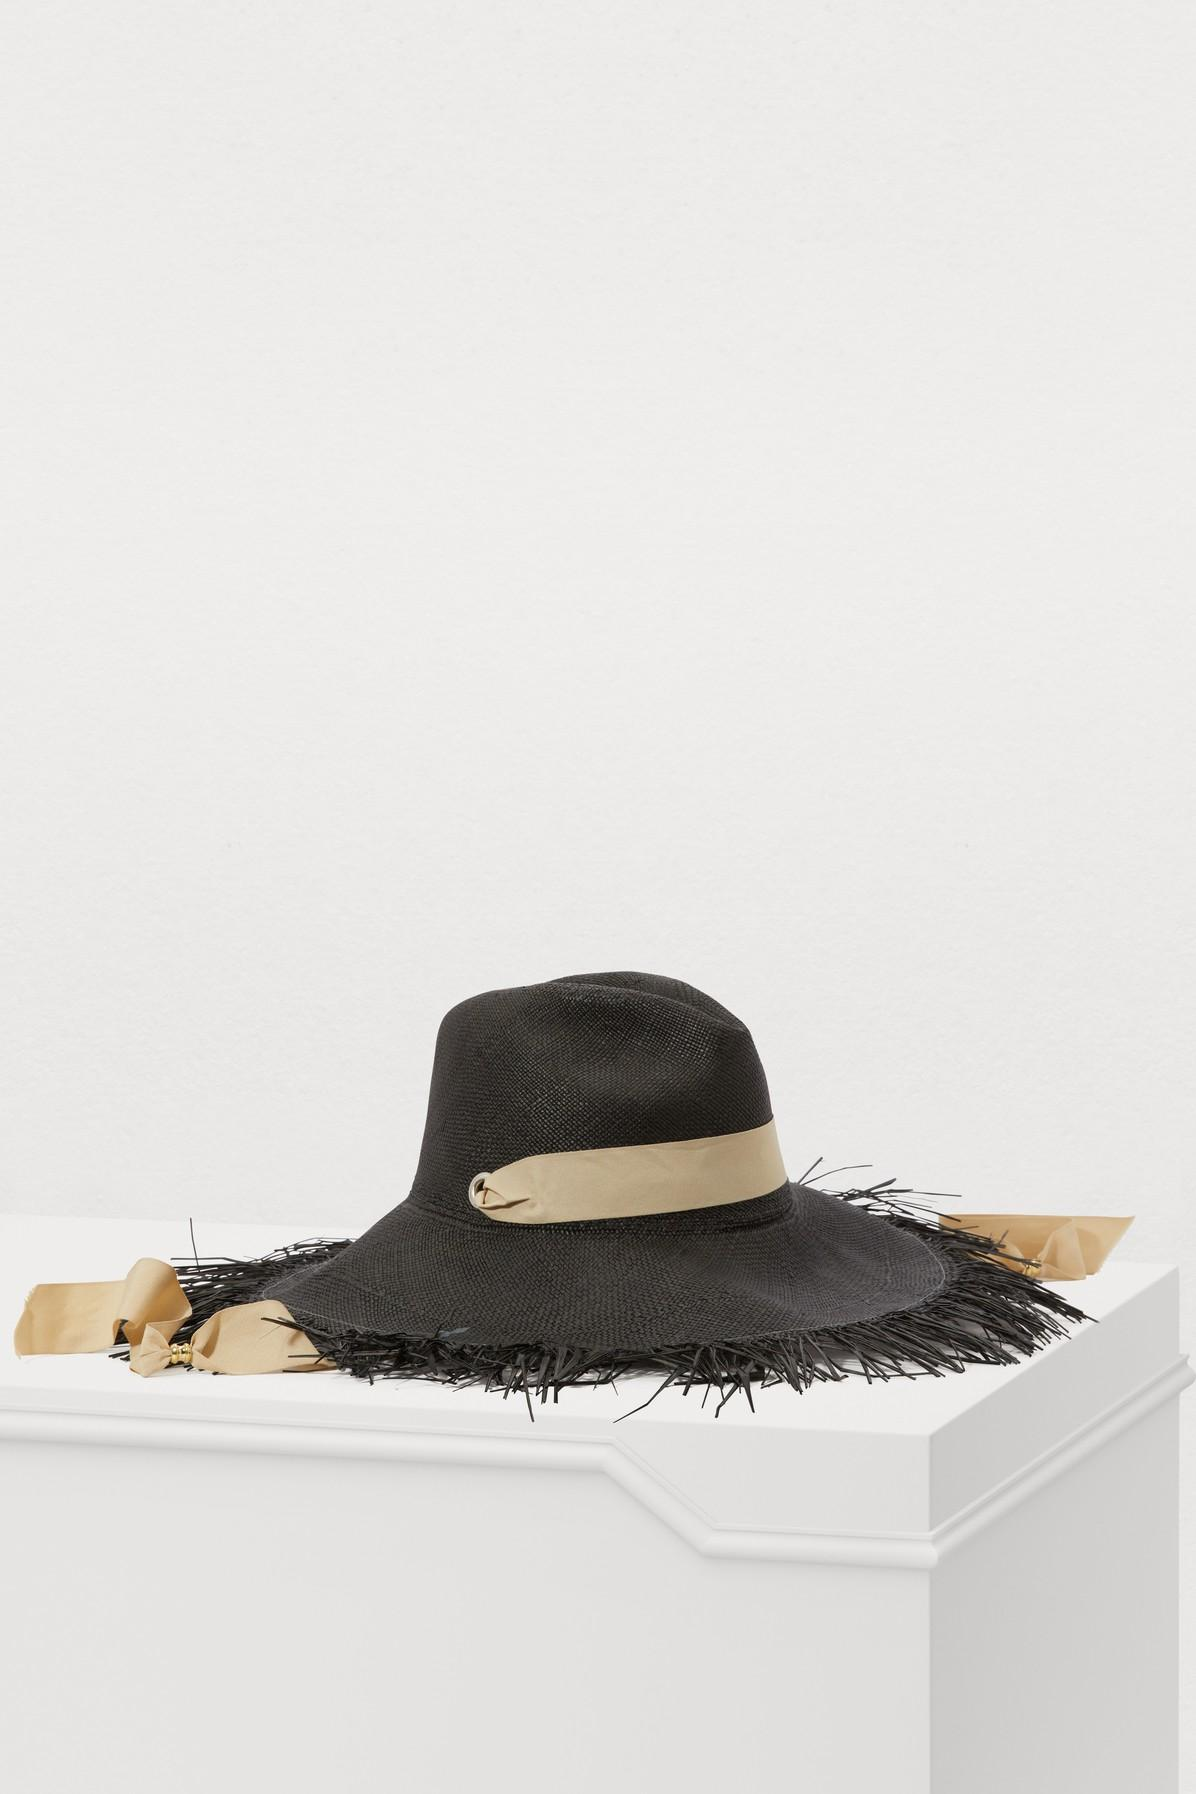 de6c505a Sensi Studio Straw Hat With Ribbon in Black - Save 30% - Lyst